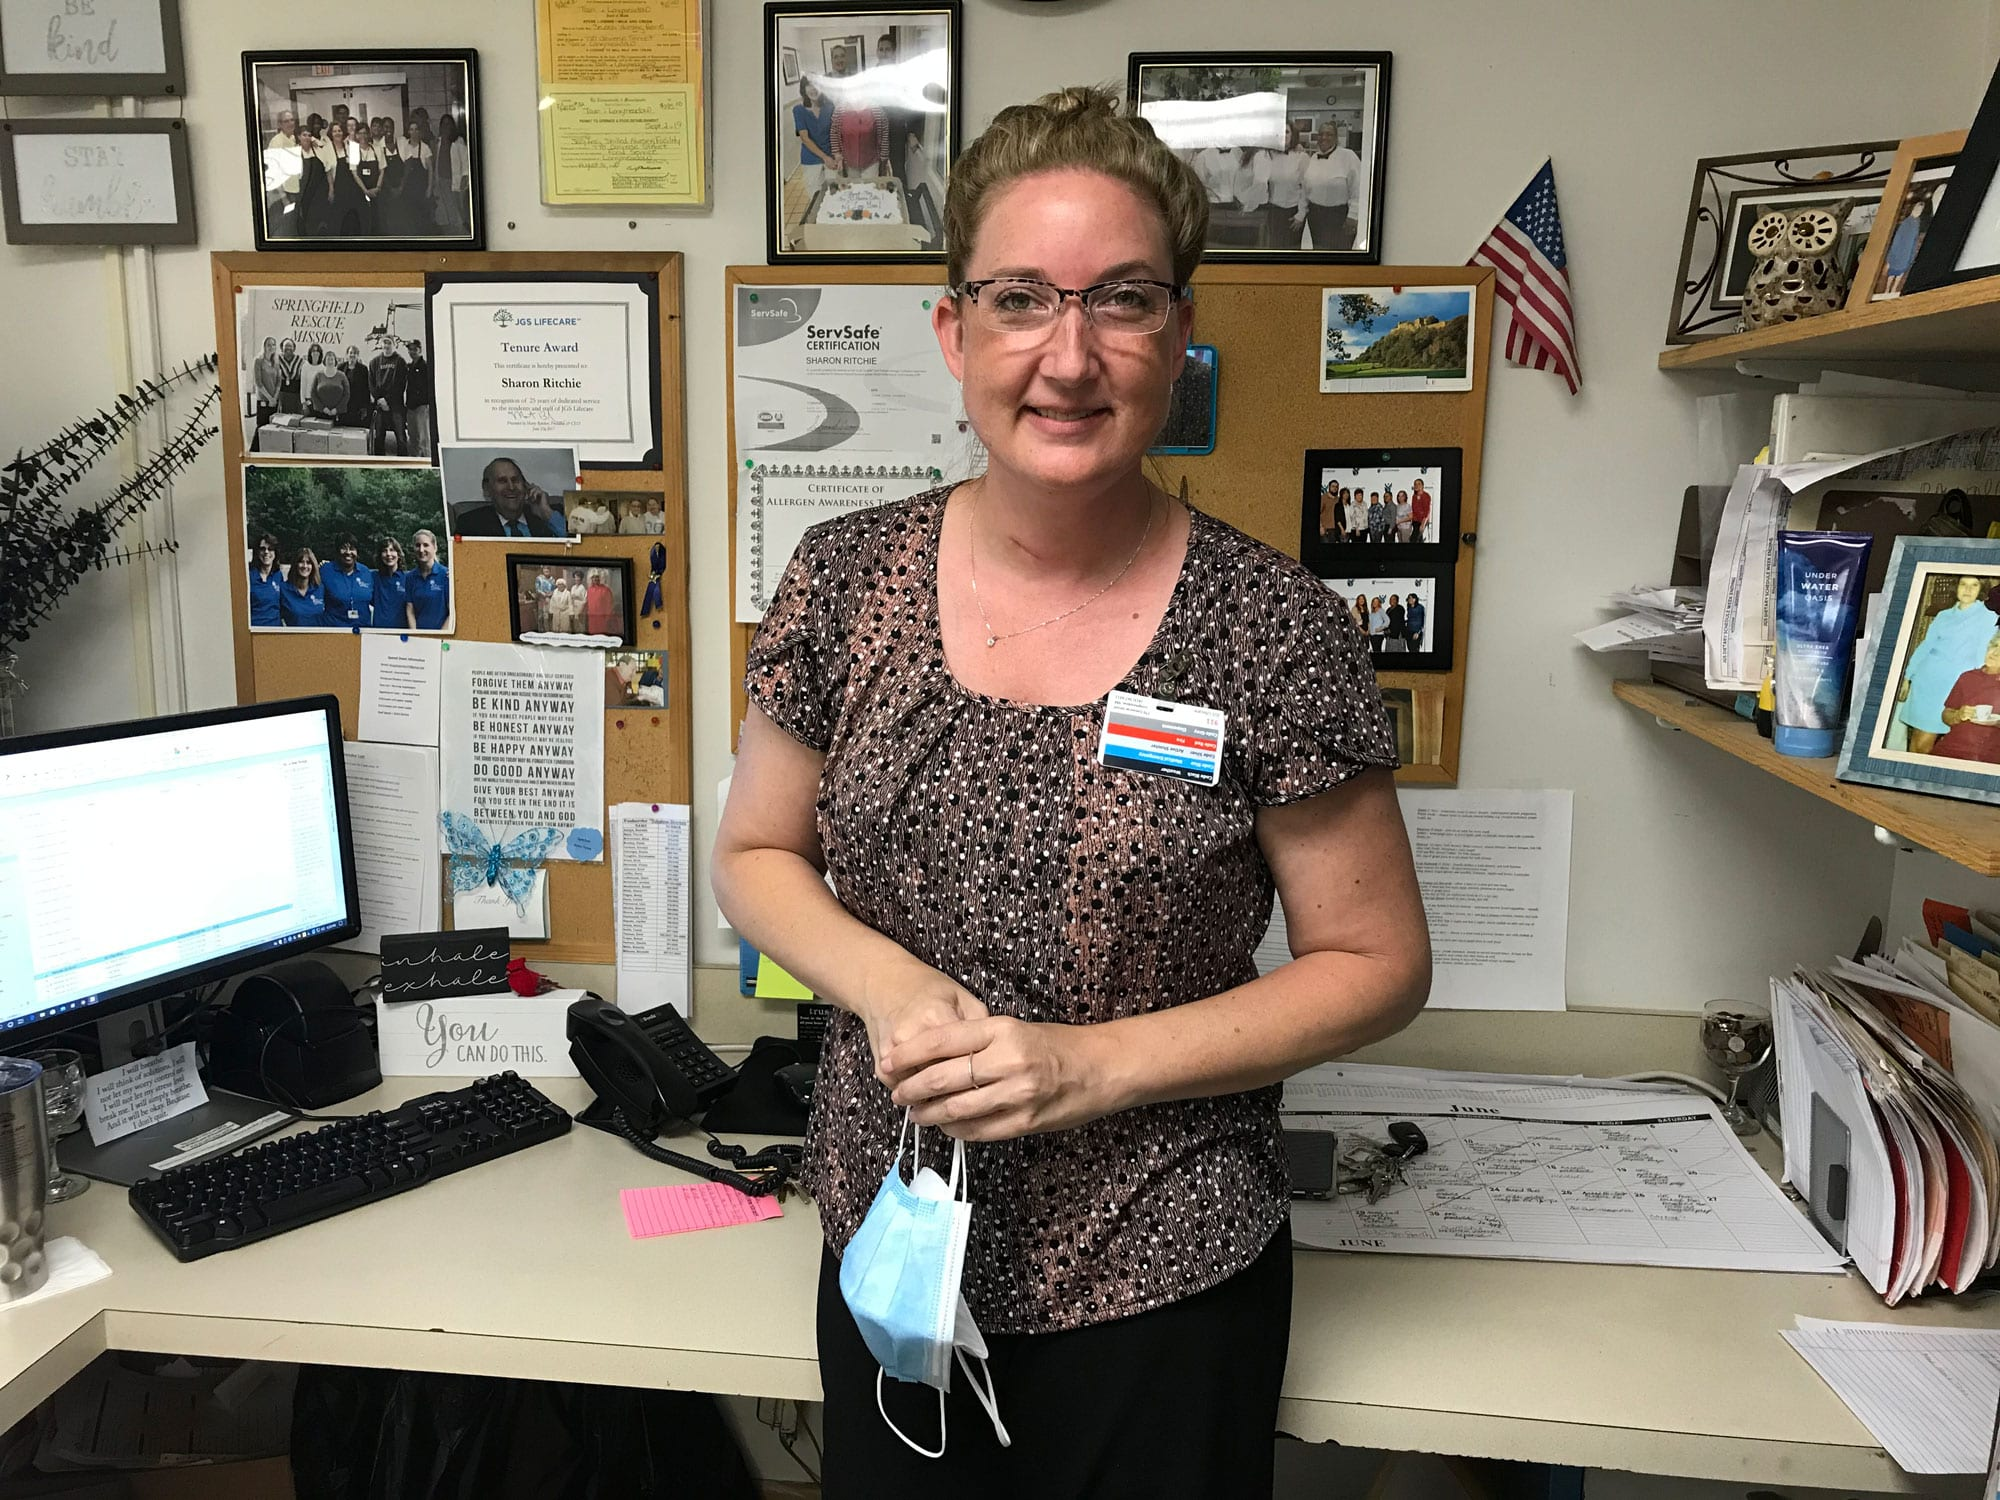 Sharon Ritchie, the Director of Food Service